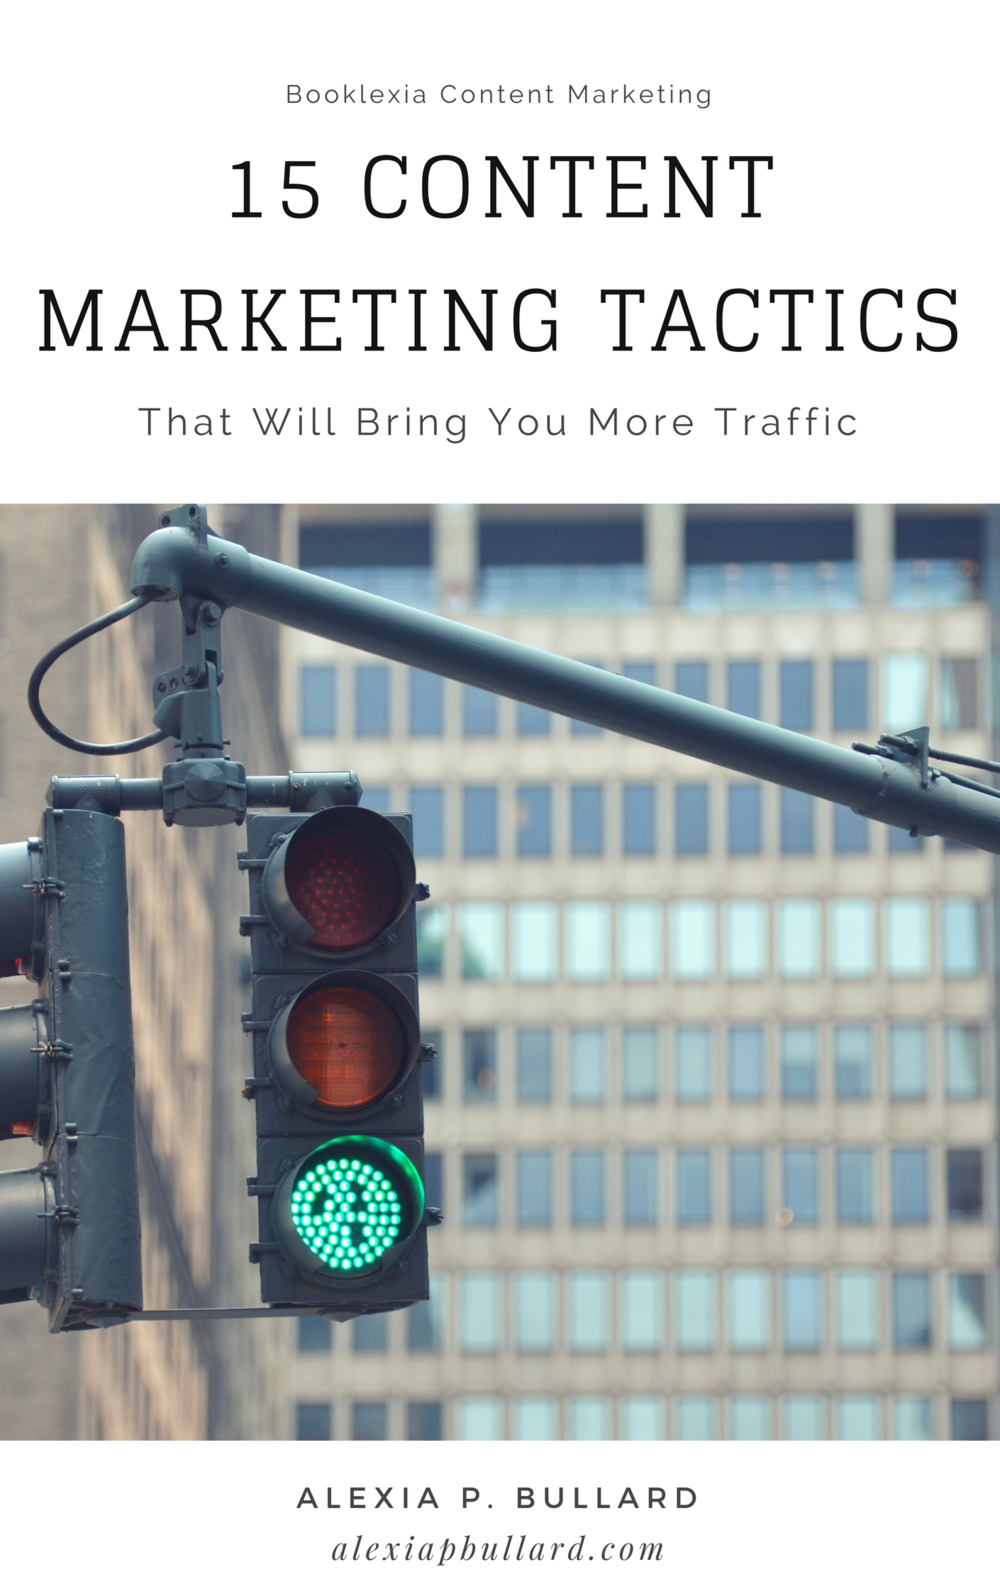 15 Simple Content Marketing Tactics That Will Bring You More Traffic | Booklexia Content Marketing